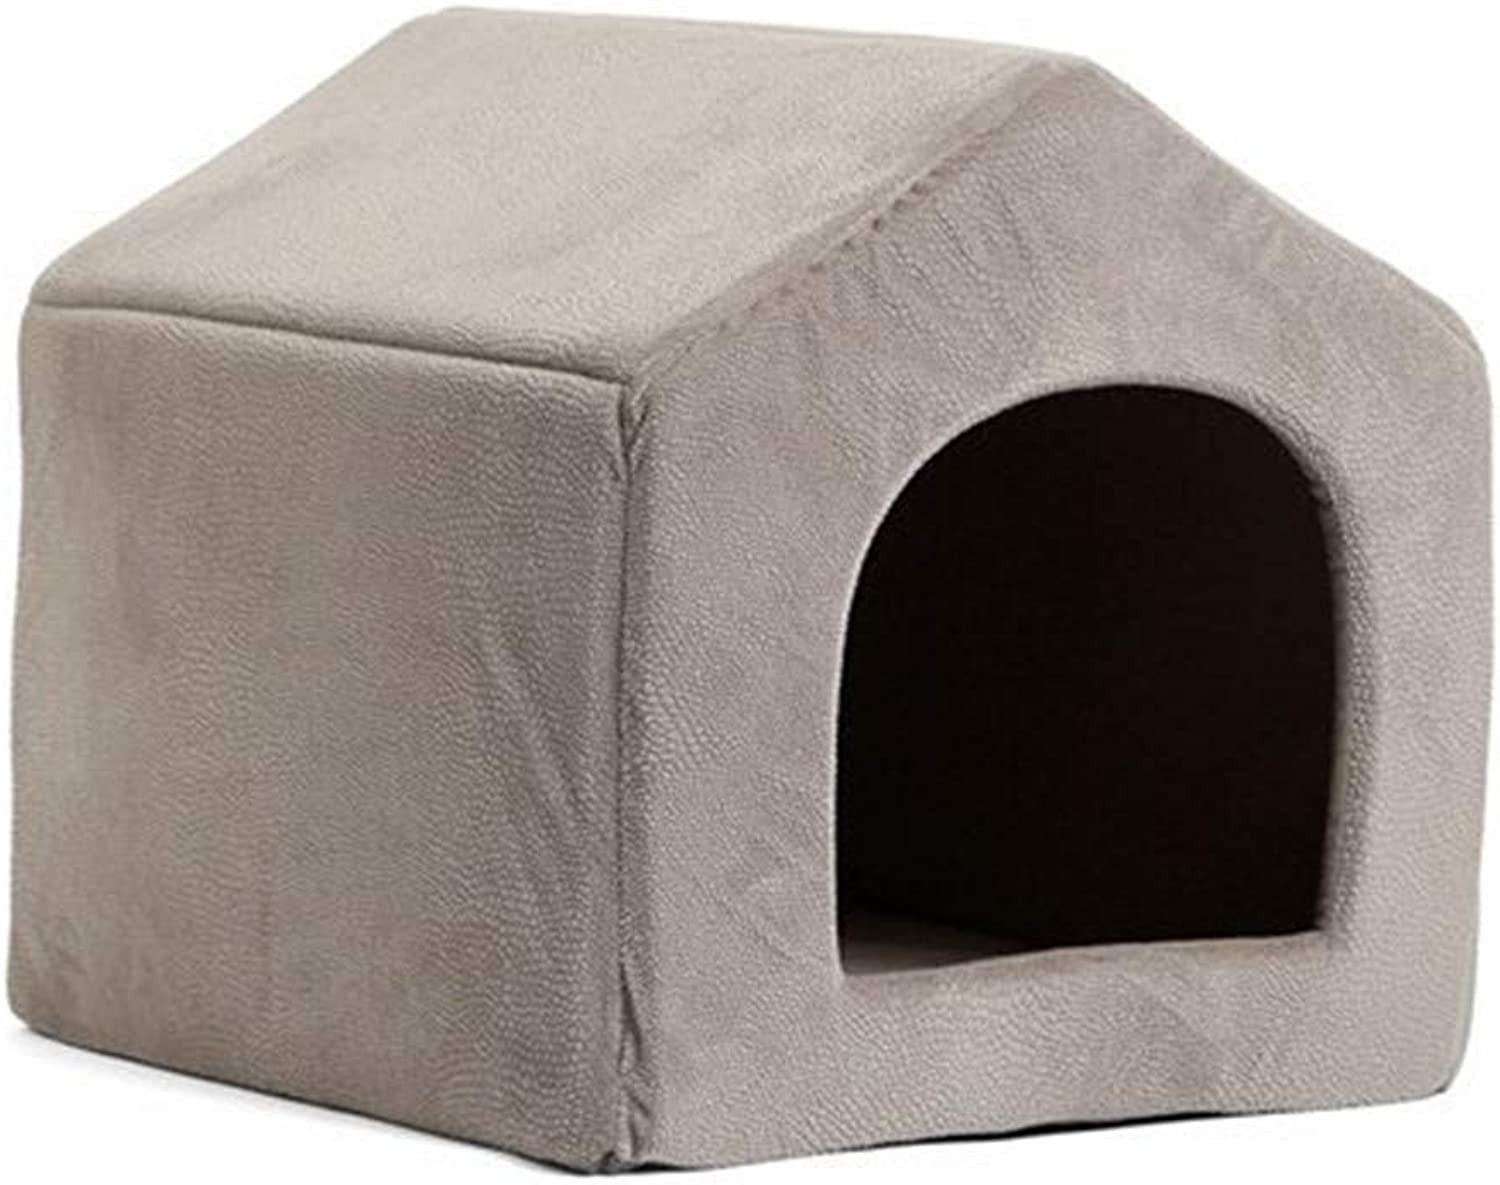 Petville LKR Pet Products Luxury Dog House Cozy Dog Bed Puppy Kennel 5 Color Pet Letto Letto Letto Letto Letto Letto Letto Gatto Mats Pet Negozio G ,L